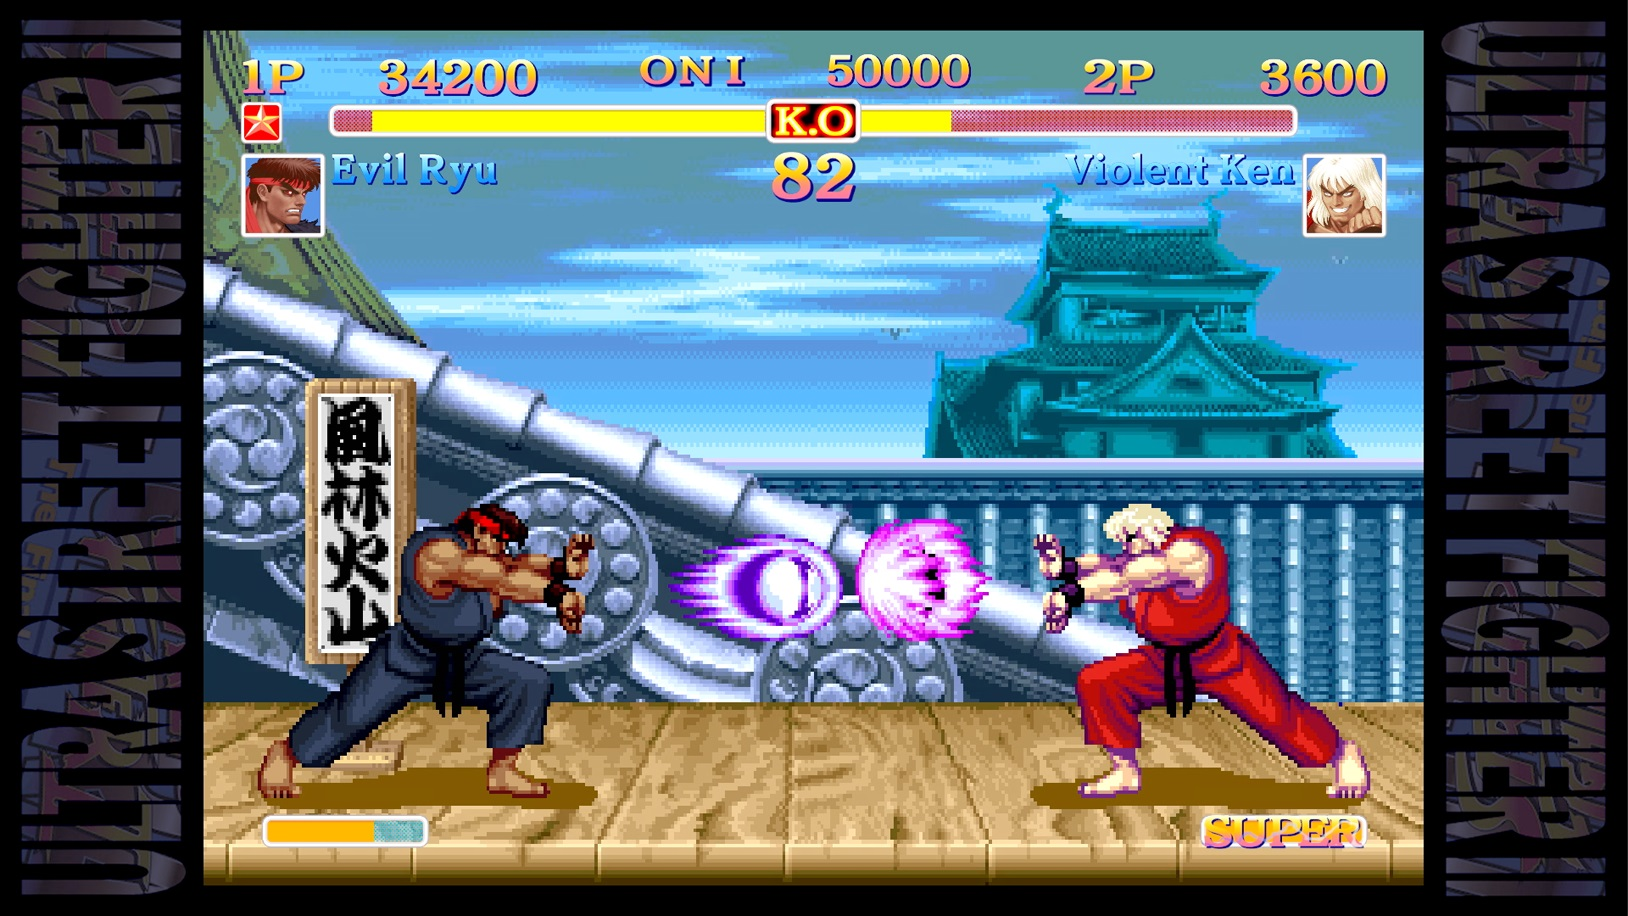 Ultra Street Fighter II fireballs